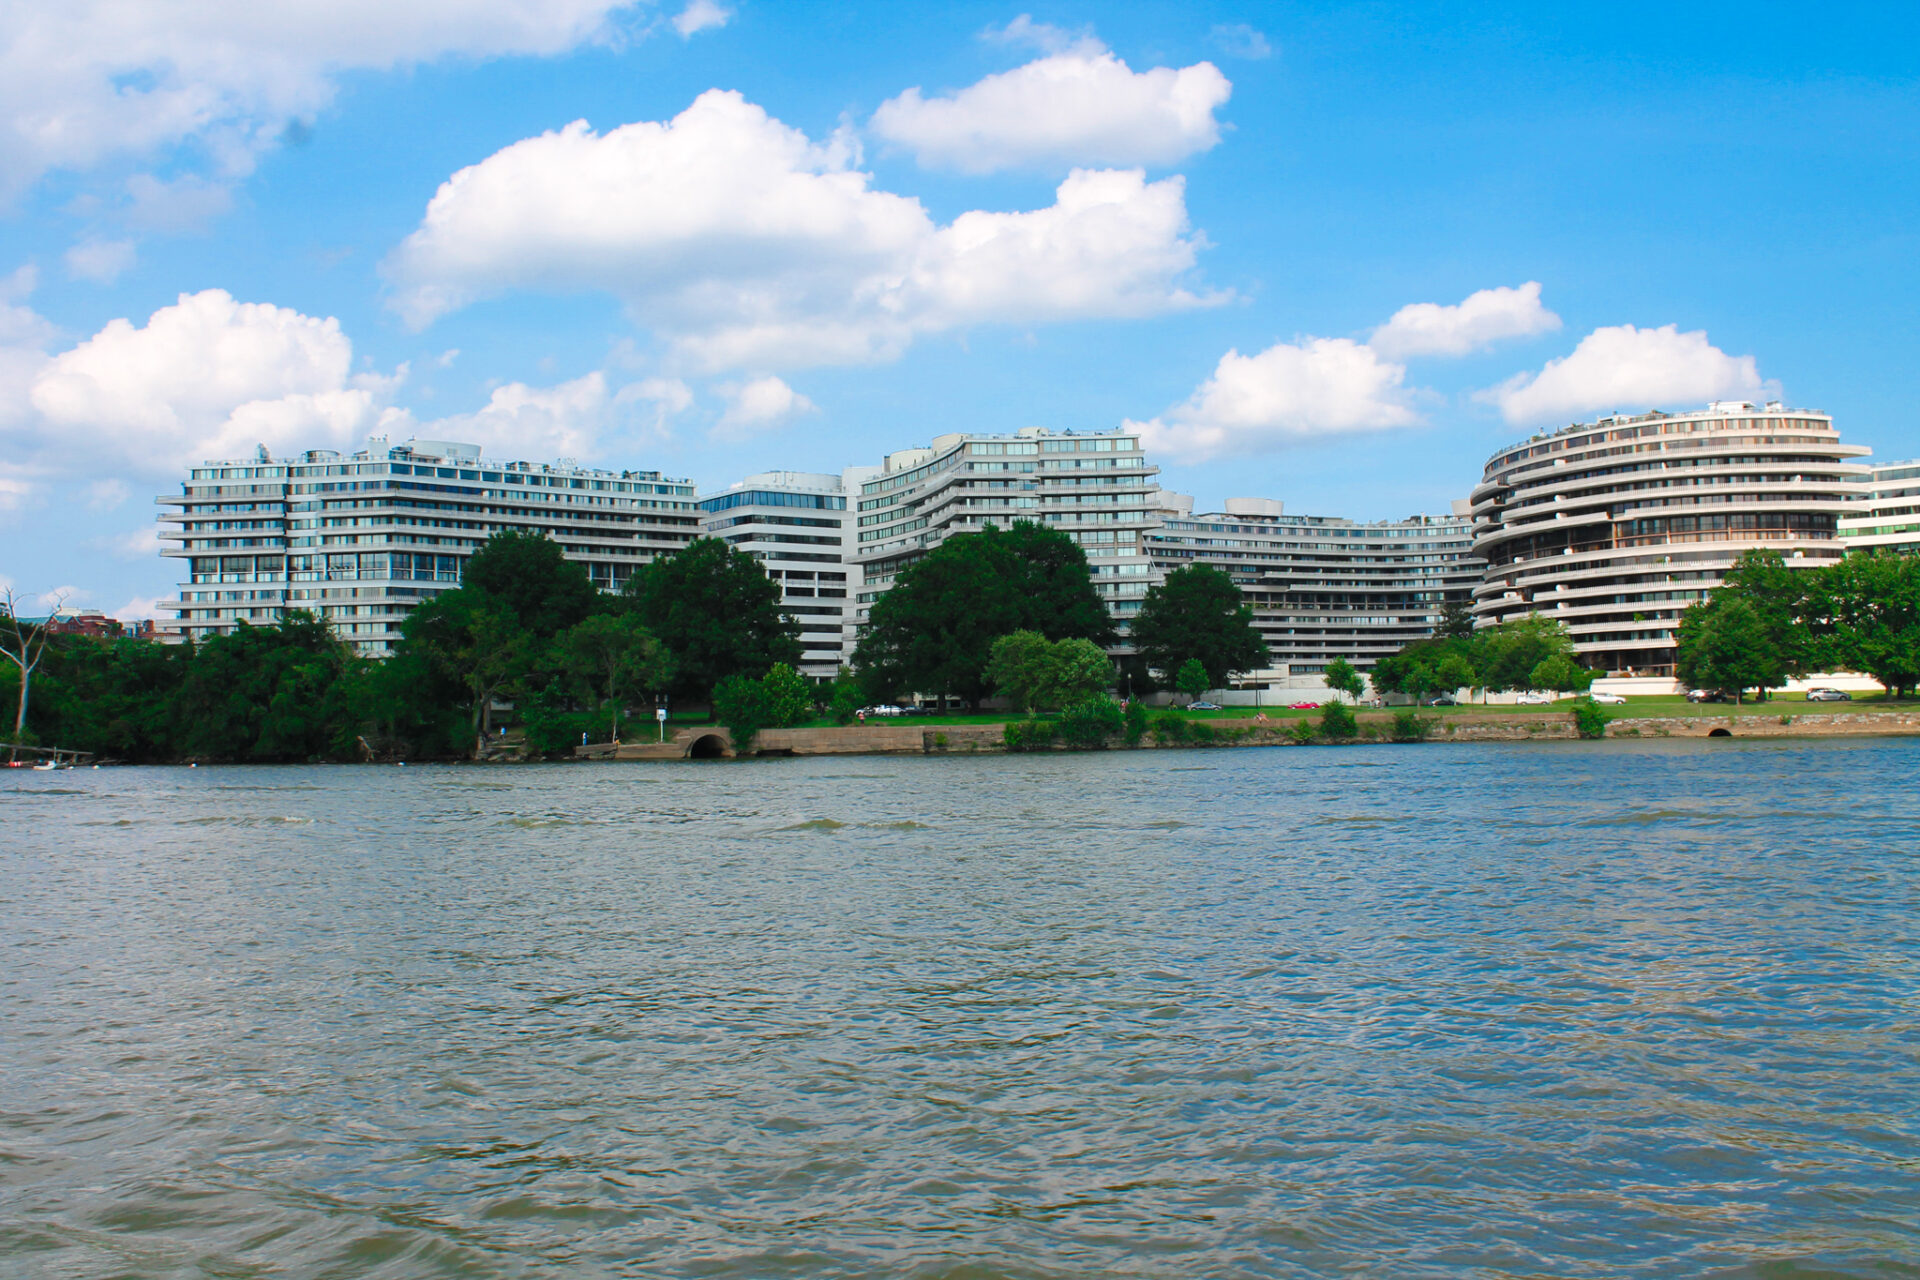 The iconic Watergate complex in Georgetown, DC.